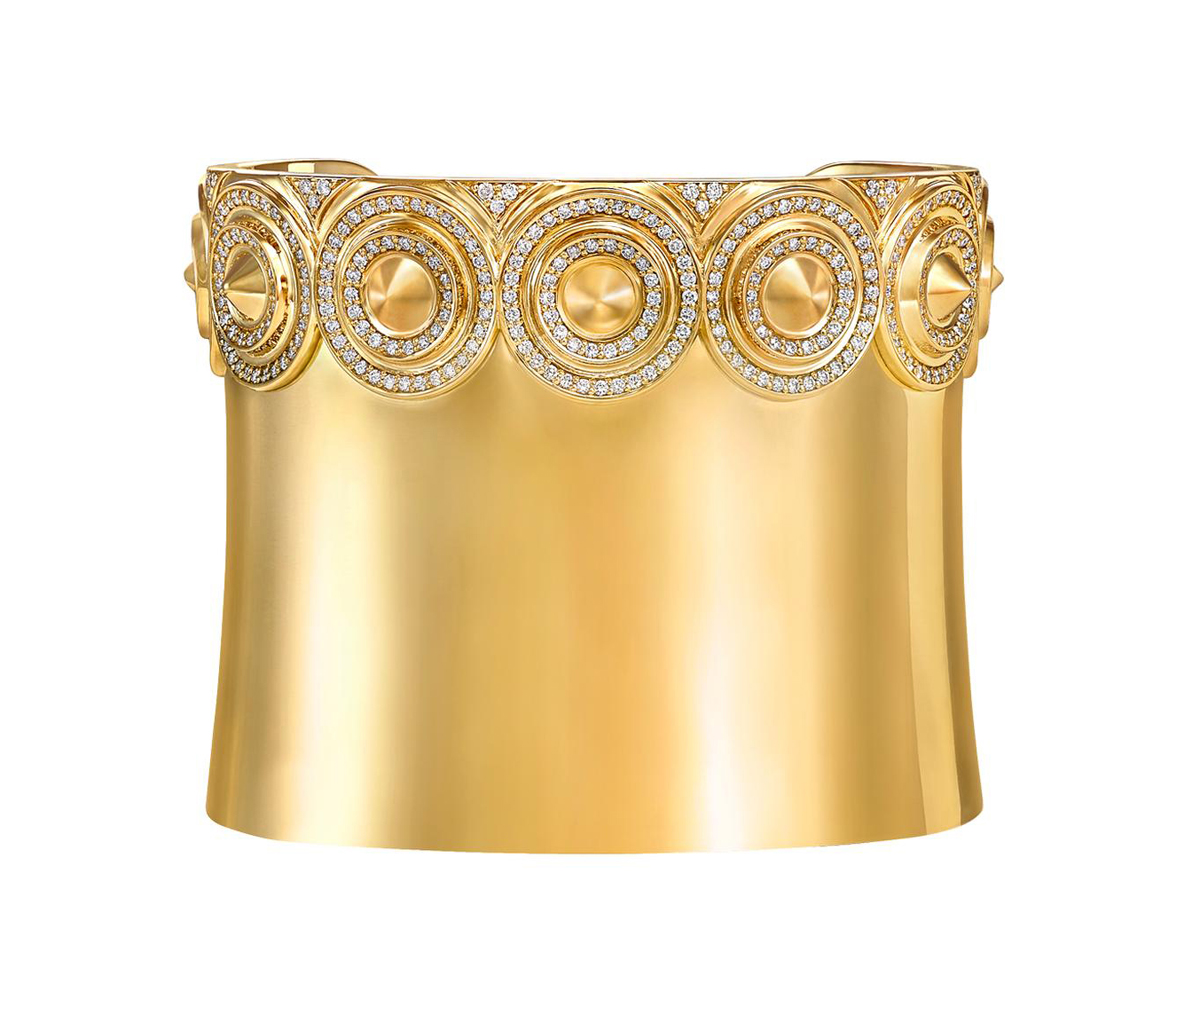 vanleles-out-of-africa-sahara-cuff-in-yellow-gold.jpg__1536x0_q75_crop-scale_subsampling-2_upscale-false